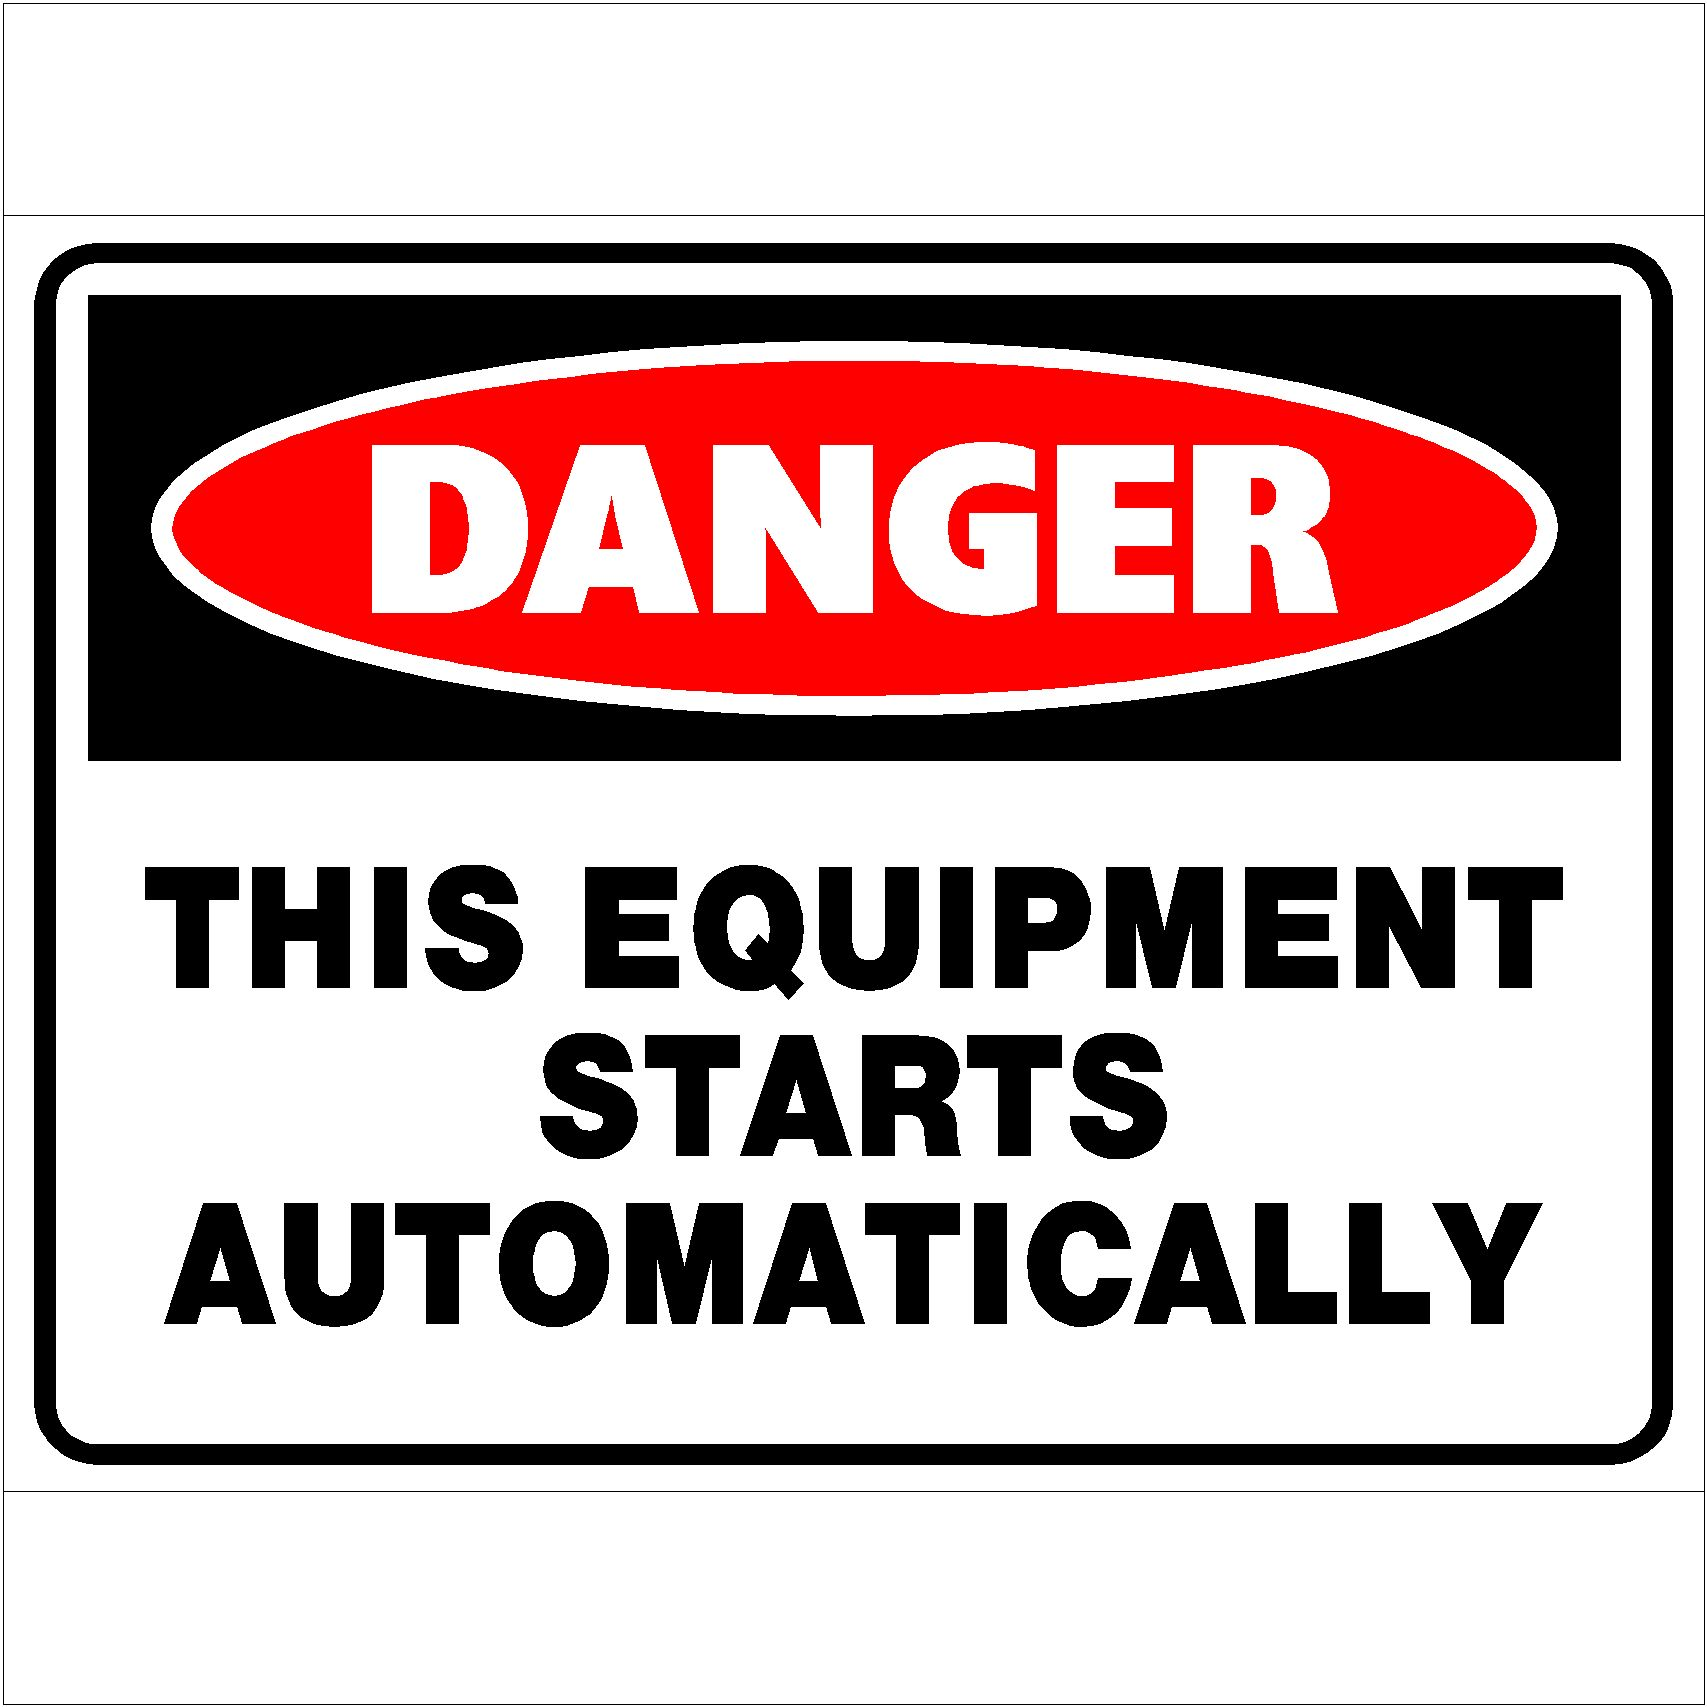 Danger This Equipment Starts Automatically